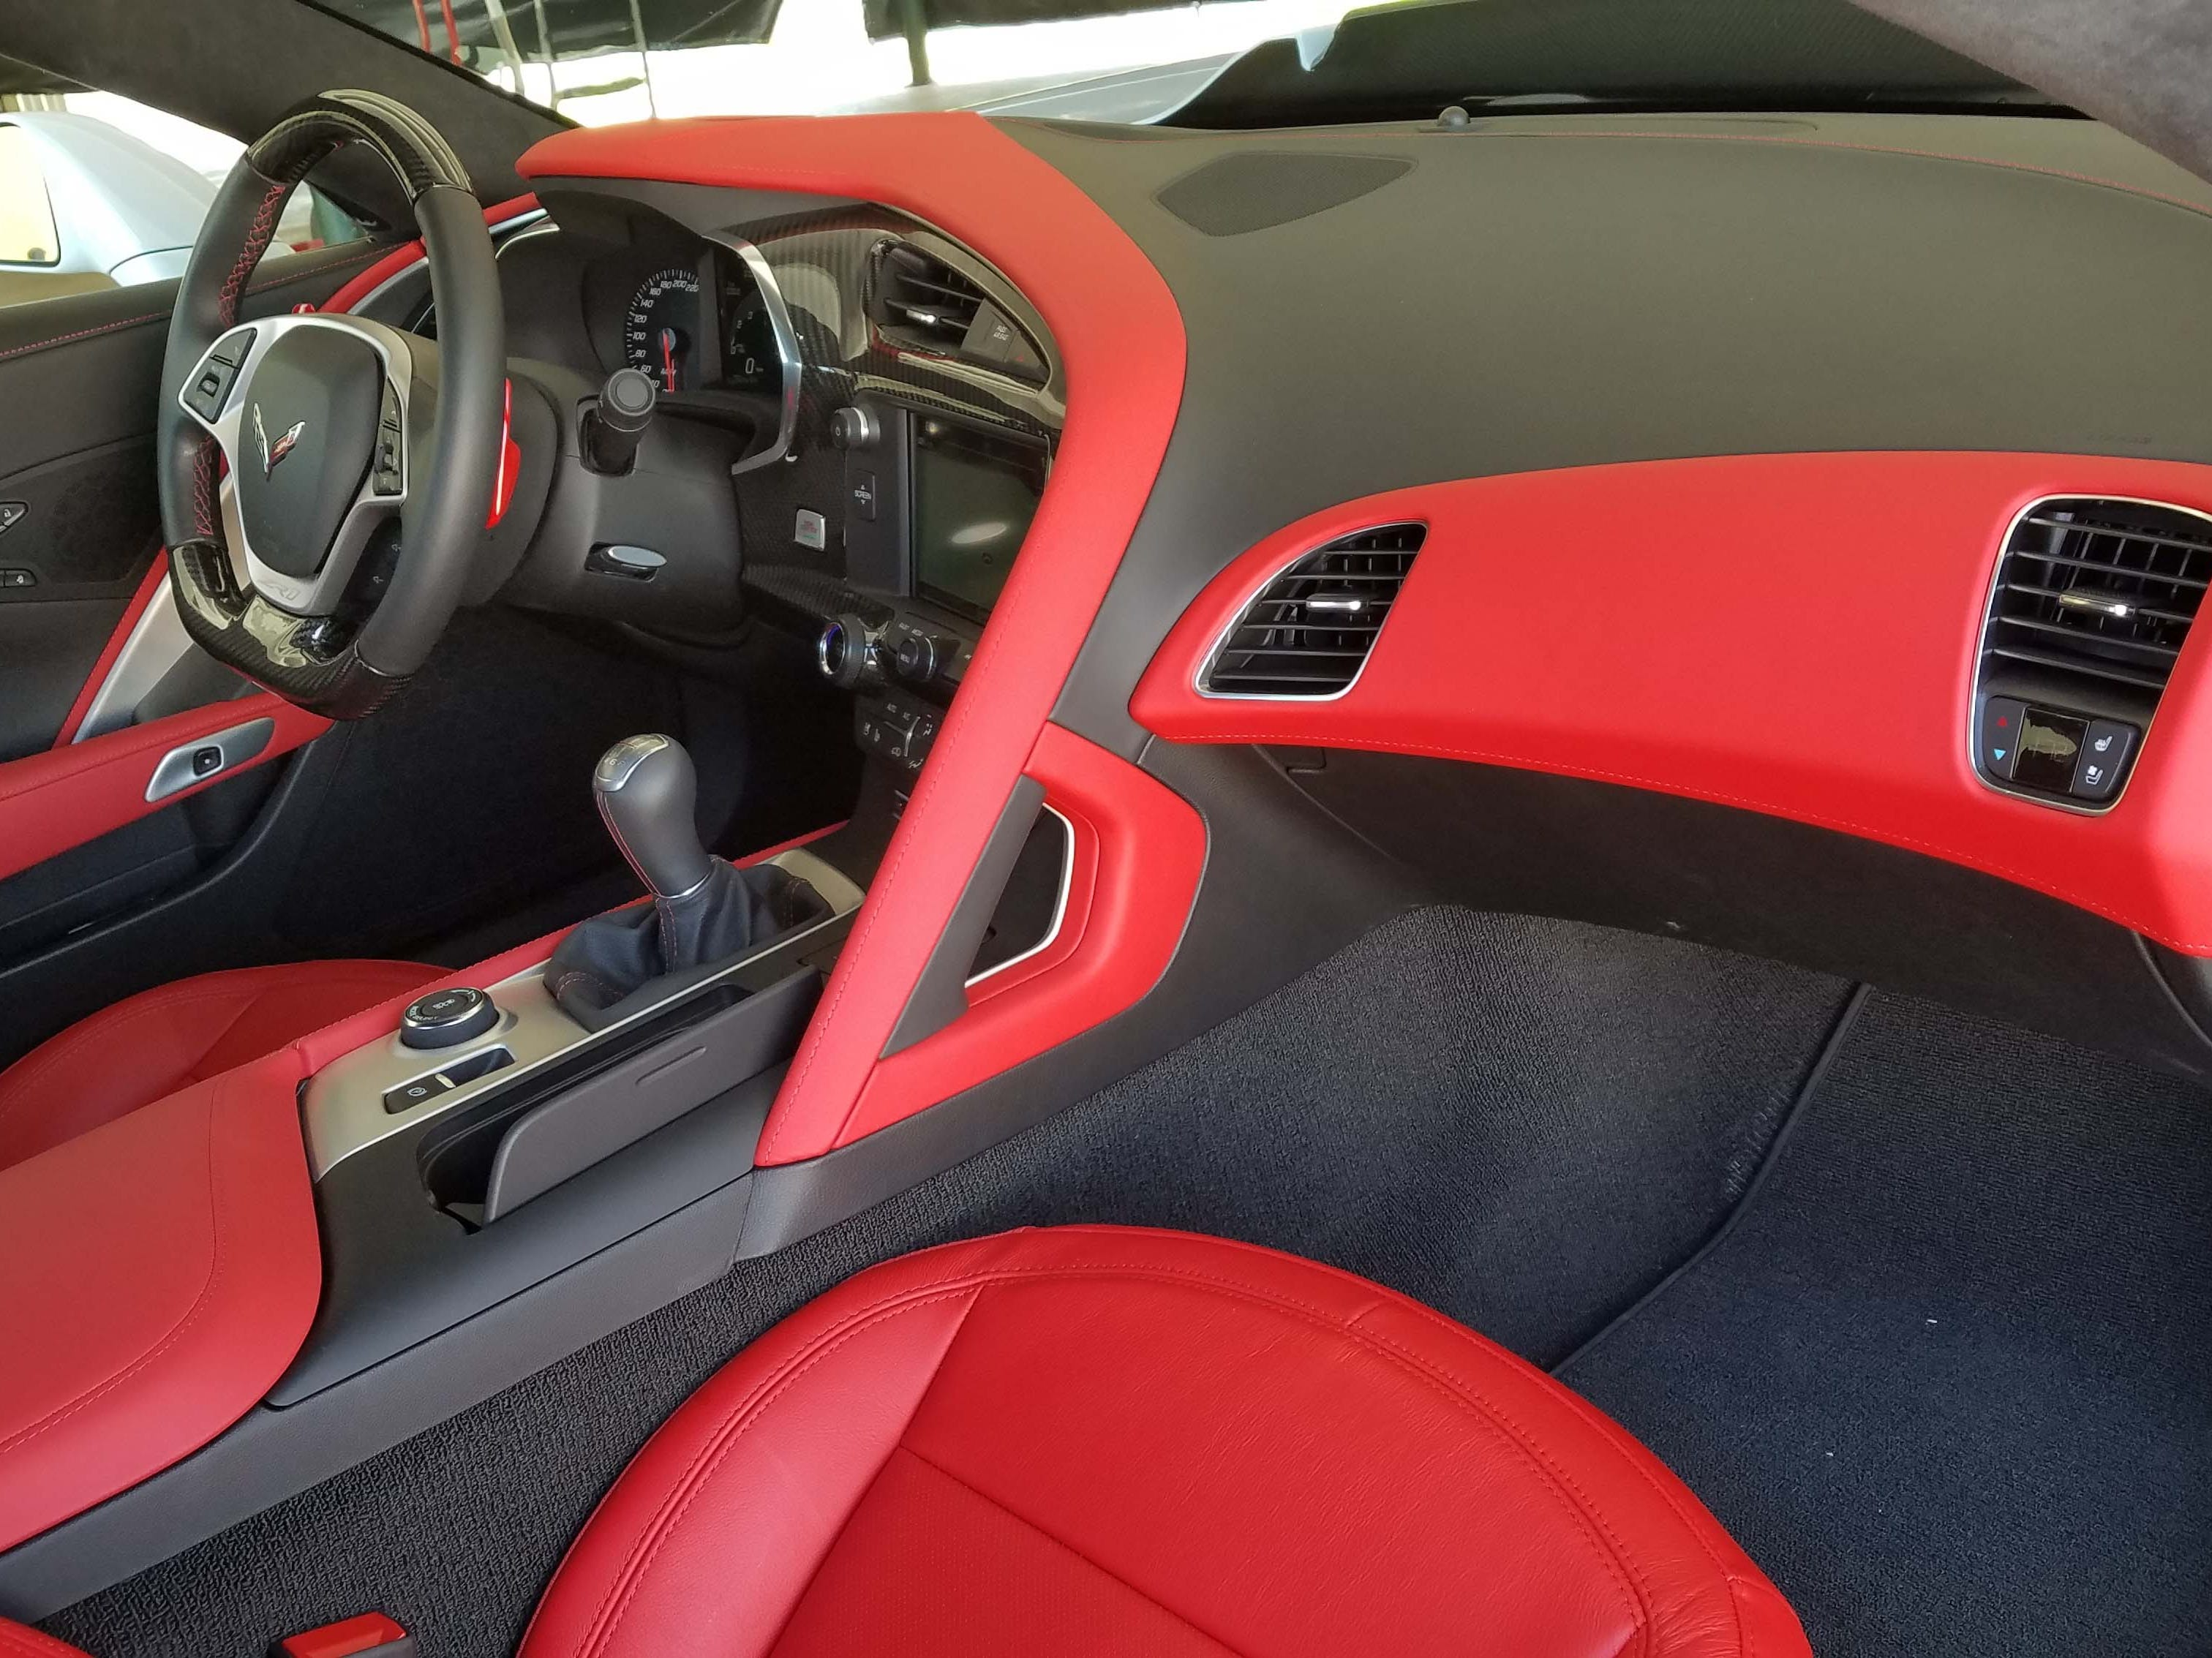 A ferocious monster on the outside, the Corvette ZR1 offers luxurious living on the inside with leather seats, Wi-Fi, smartphone connectivity and other swish amenities. It comes in red, too.